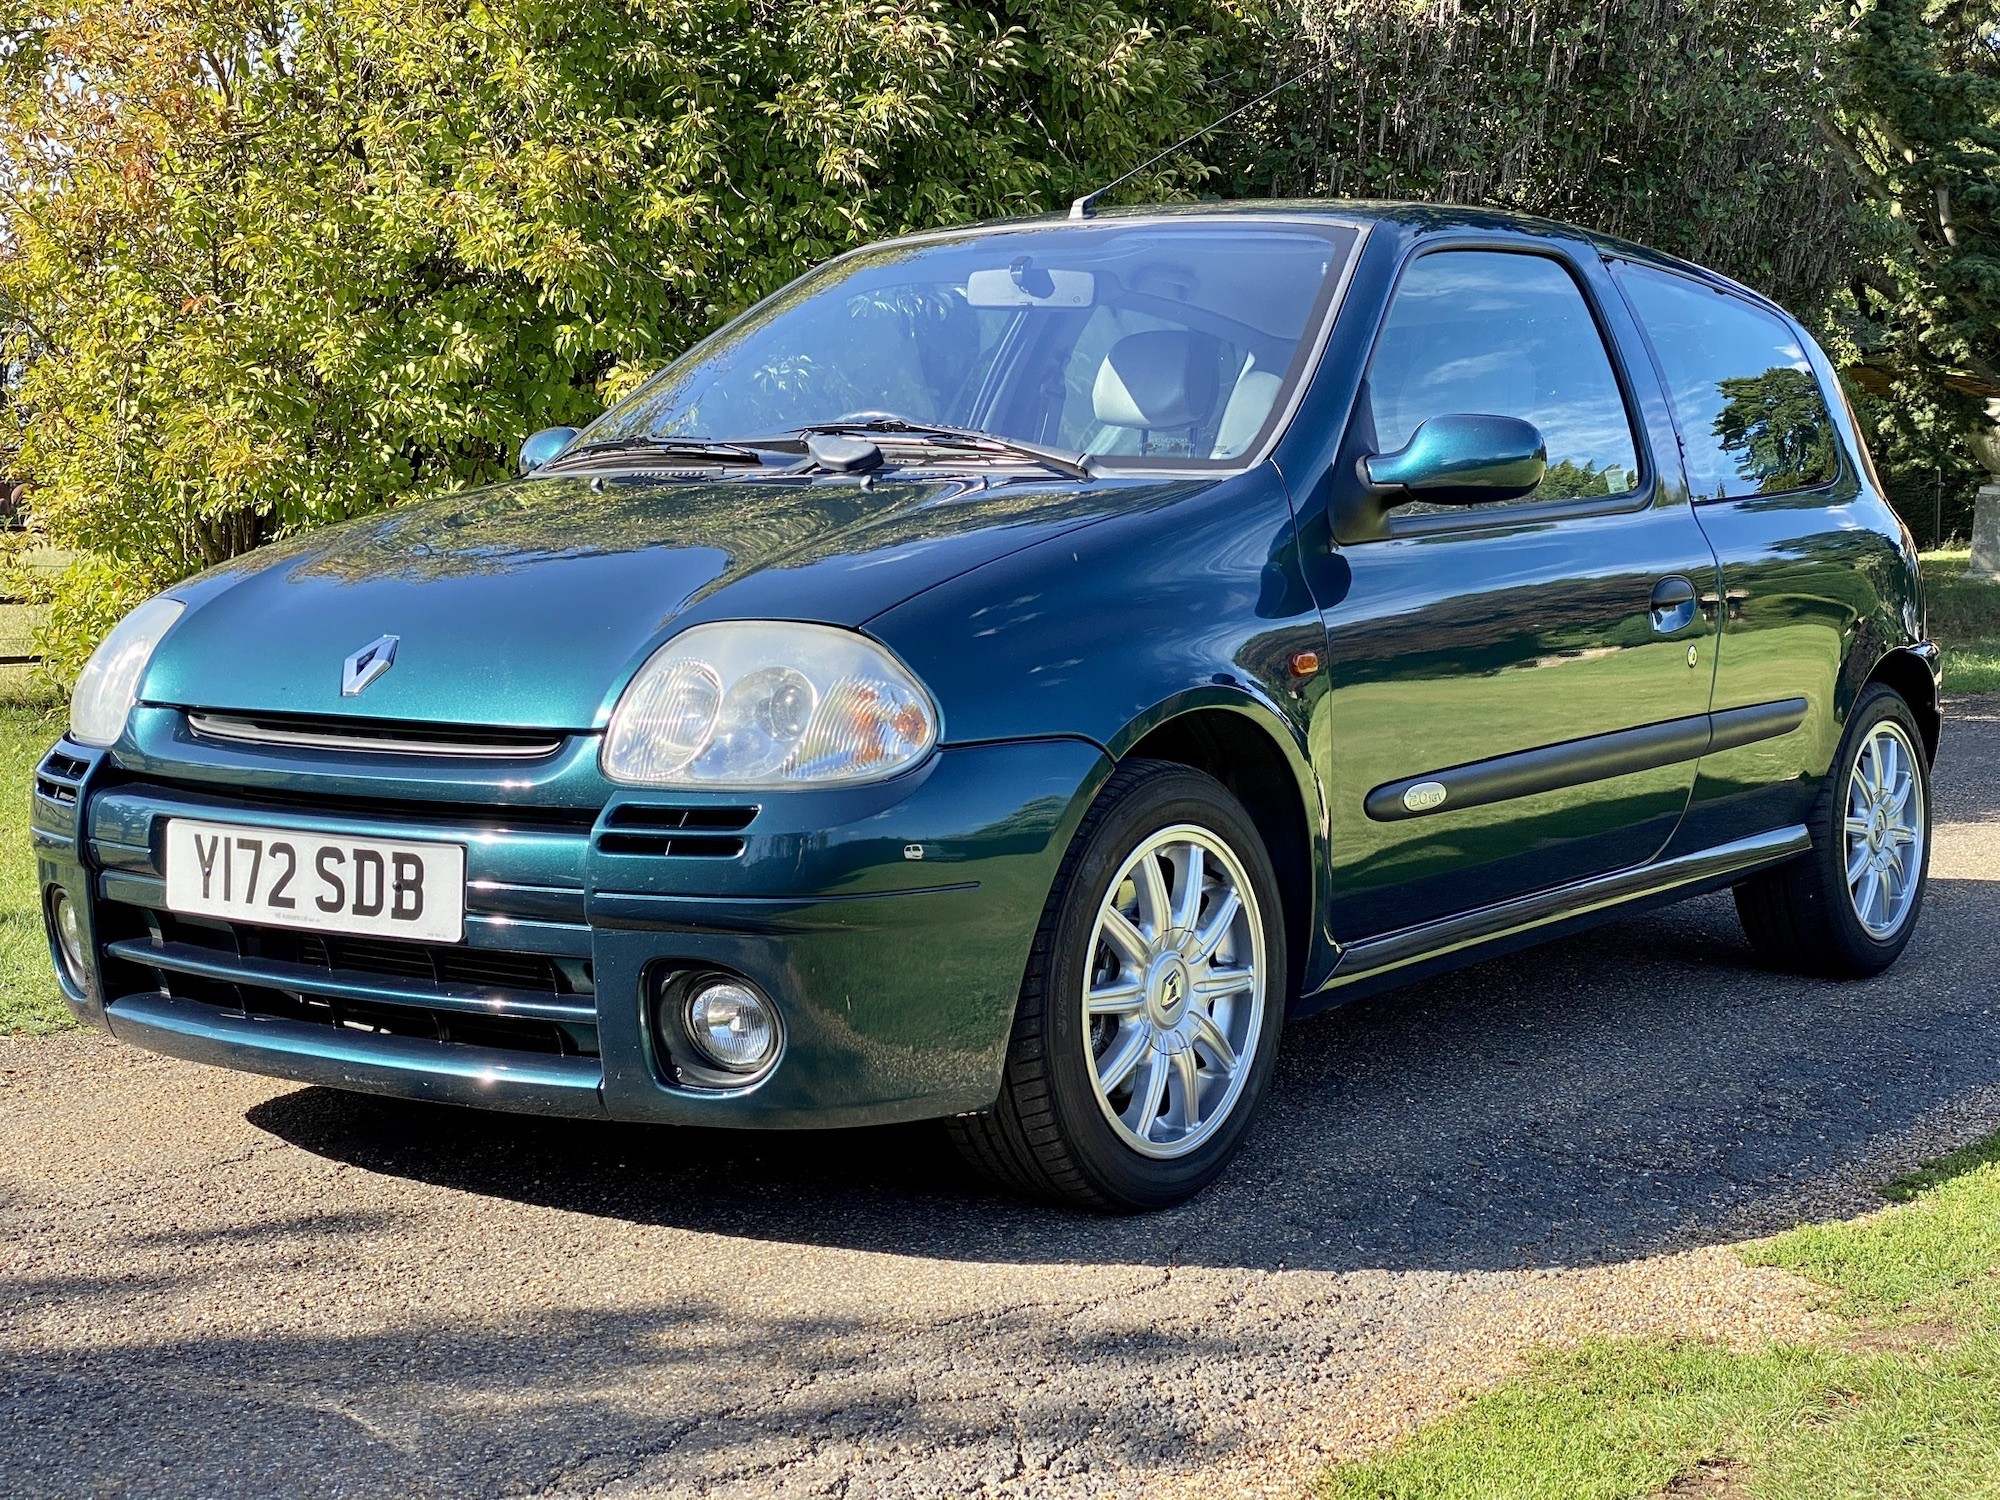 2001 RENAULTSPORT CLIO 172 EXCLUSIVE